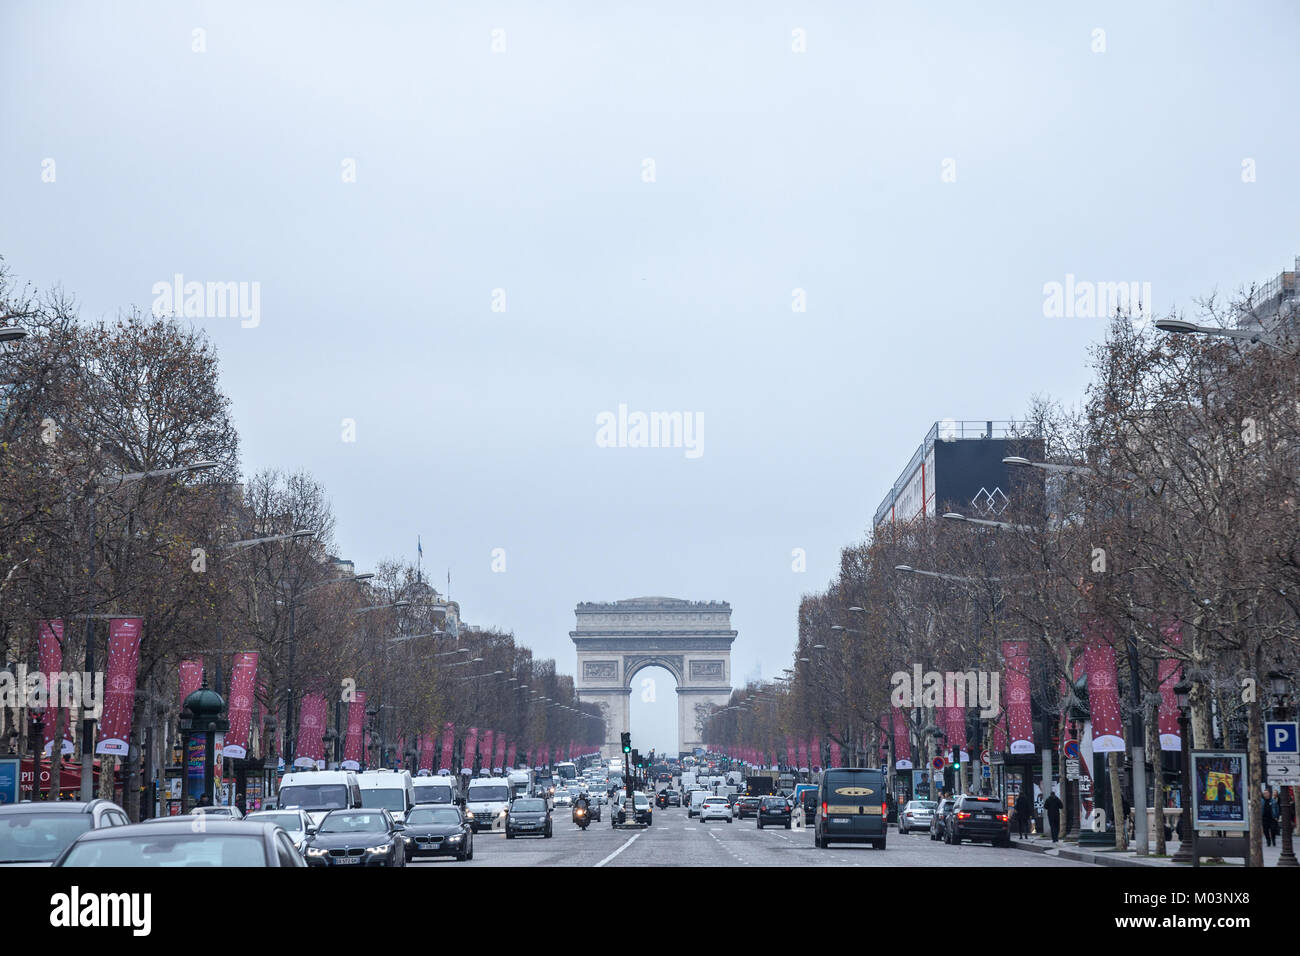 PARIS, FRANCE - DECEMBER 20, 2017: Champs Elysees avenue with the Arc de Triomphe in background during a cloudy - Stock Image